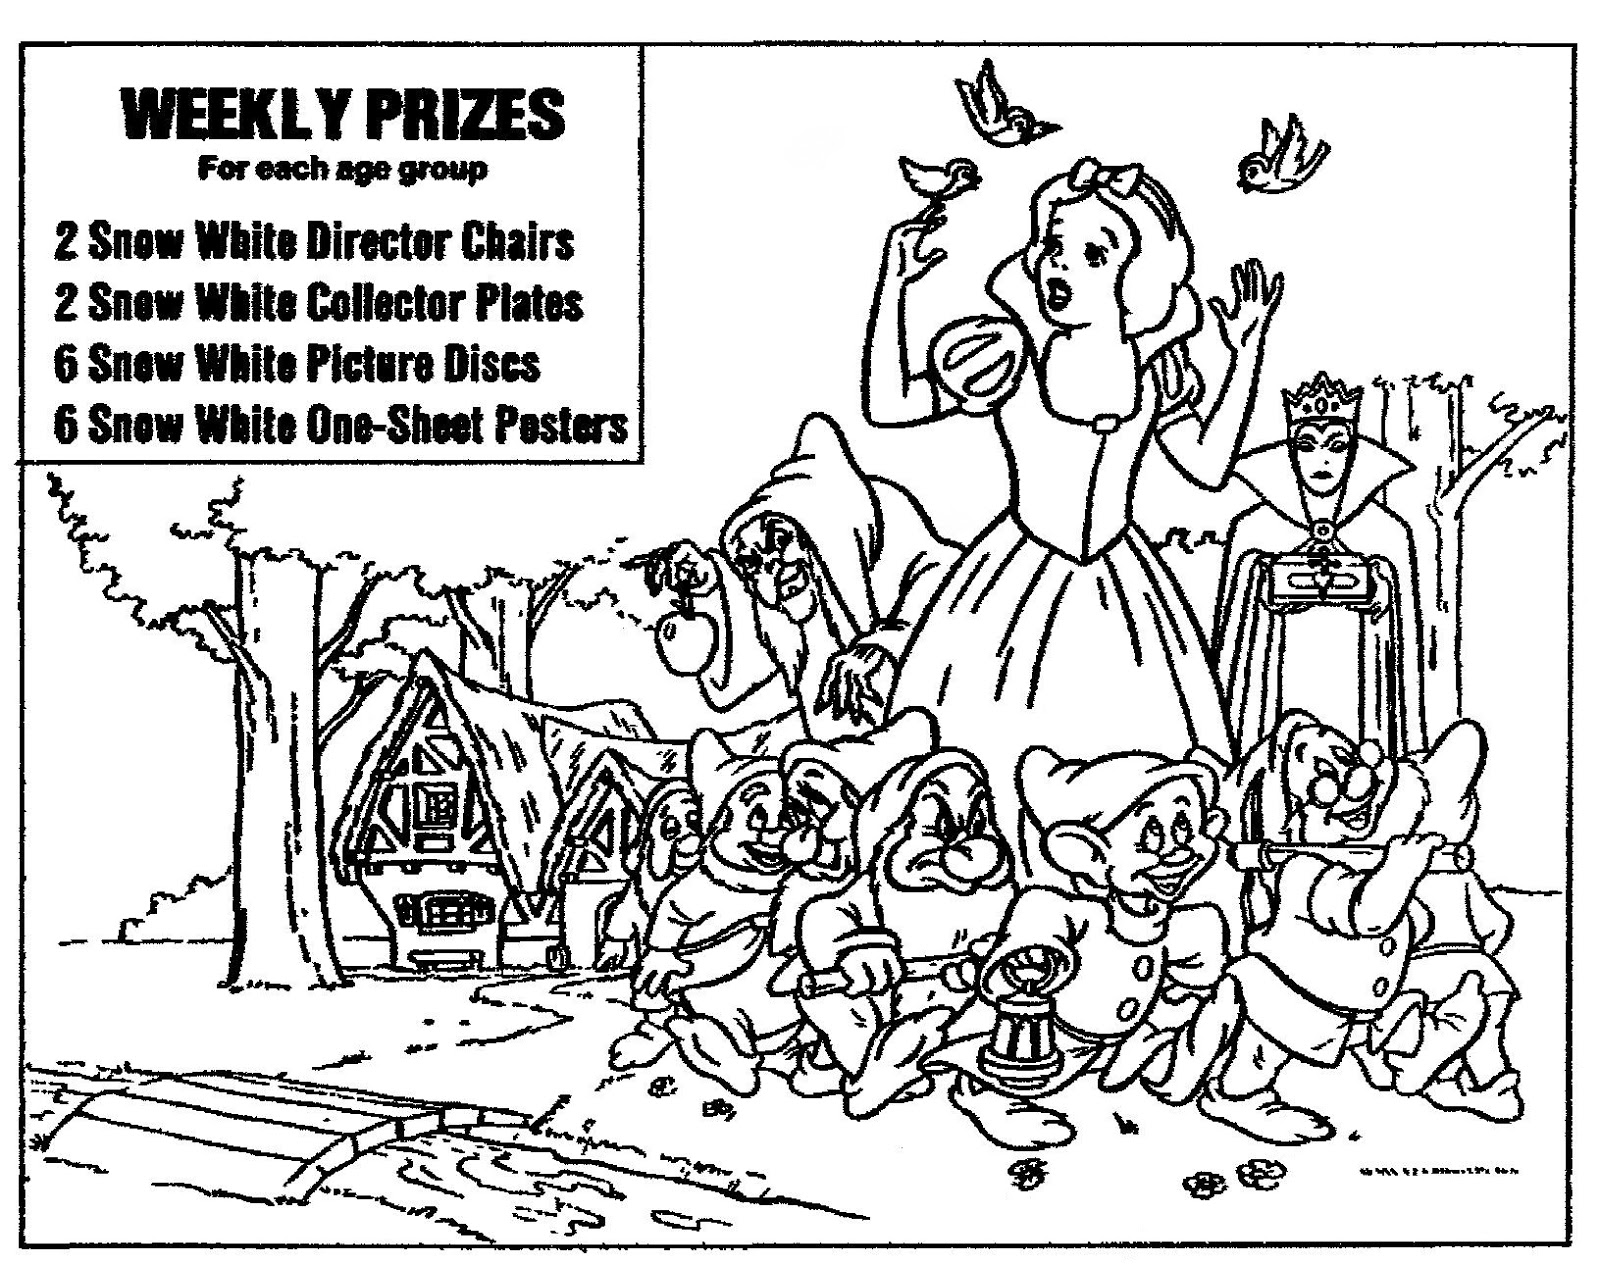 Mostly Paper Dolls Too!: SNOW WHITE Coloring Contest